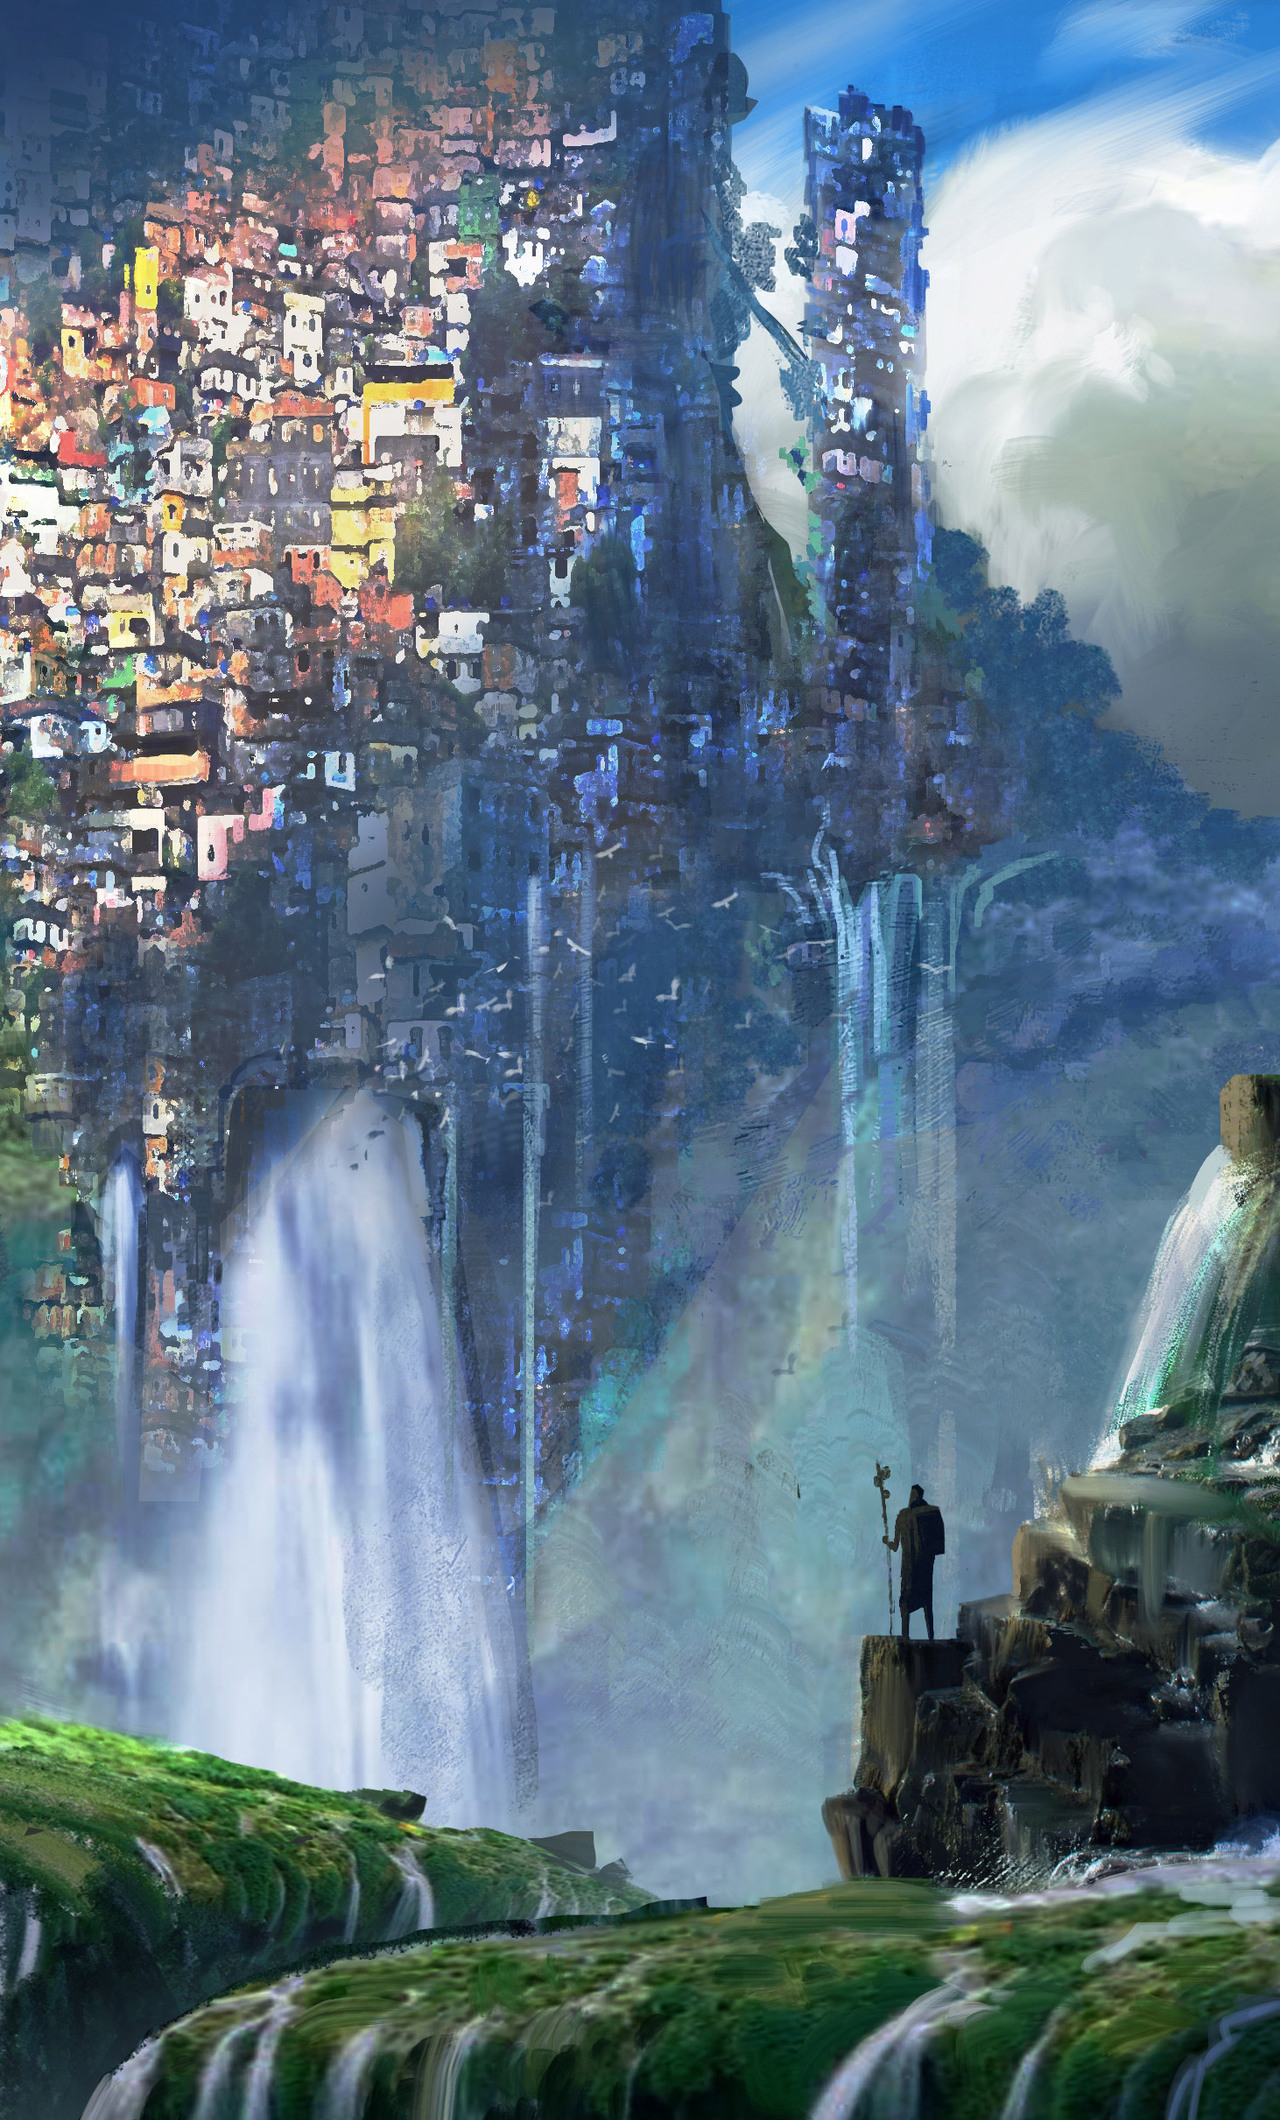 waterfall-slums-image.jpg